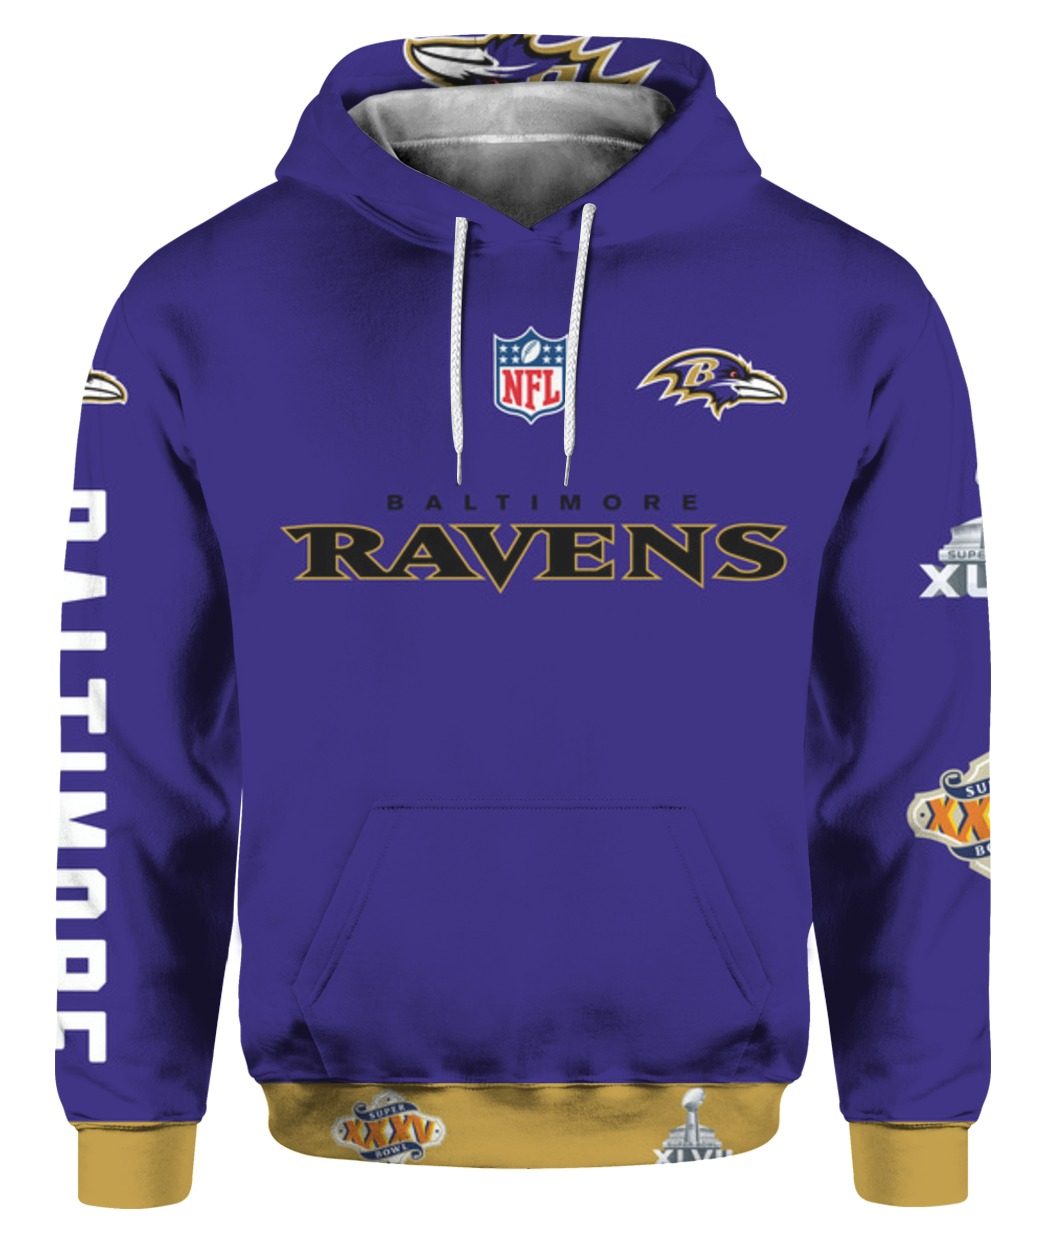 Stand for the flag kneel for the cross baltimore ravens all over print hoodie